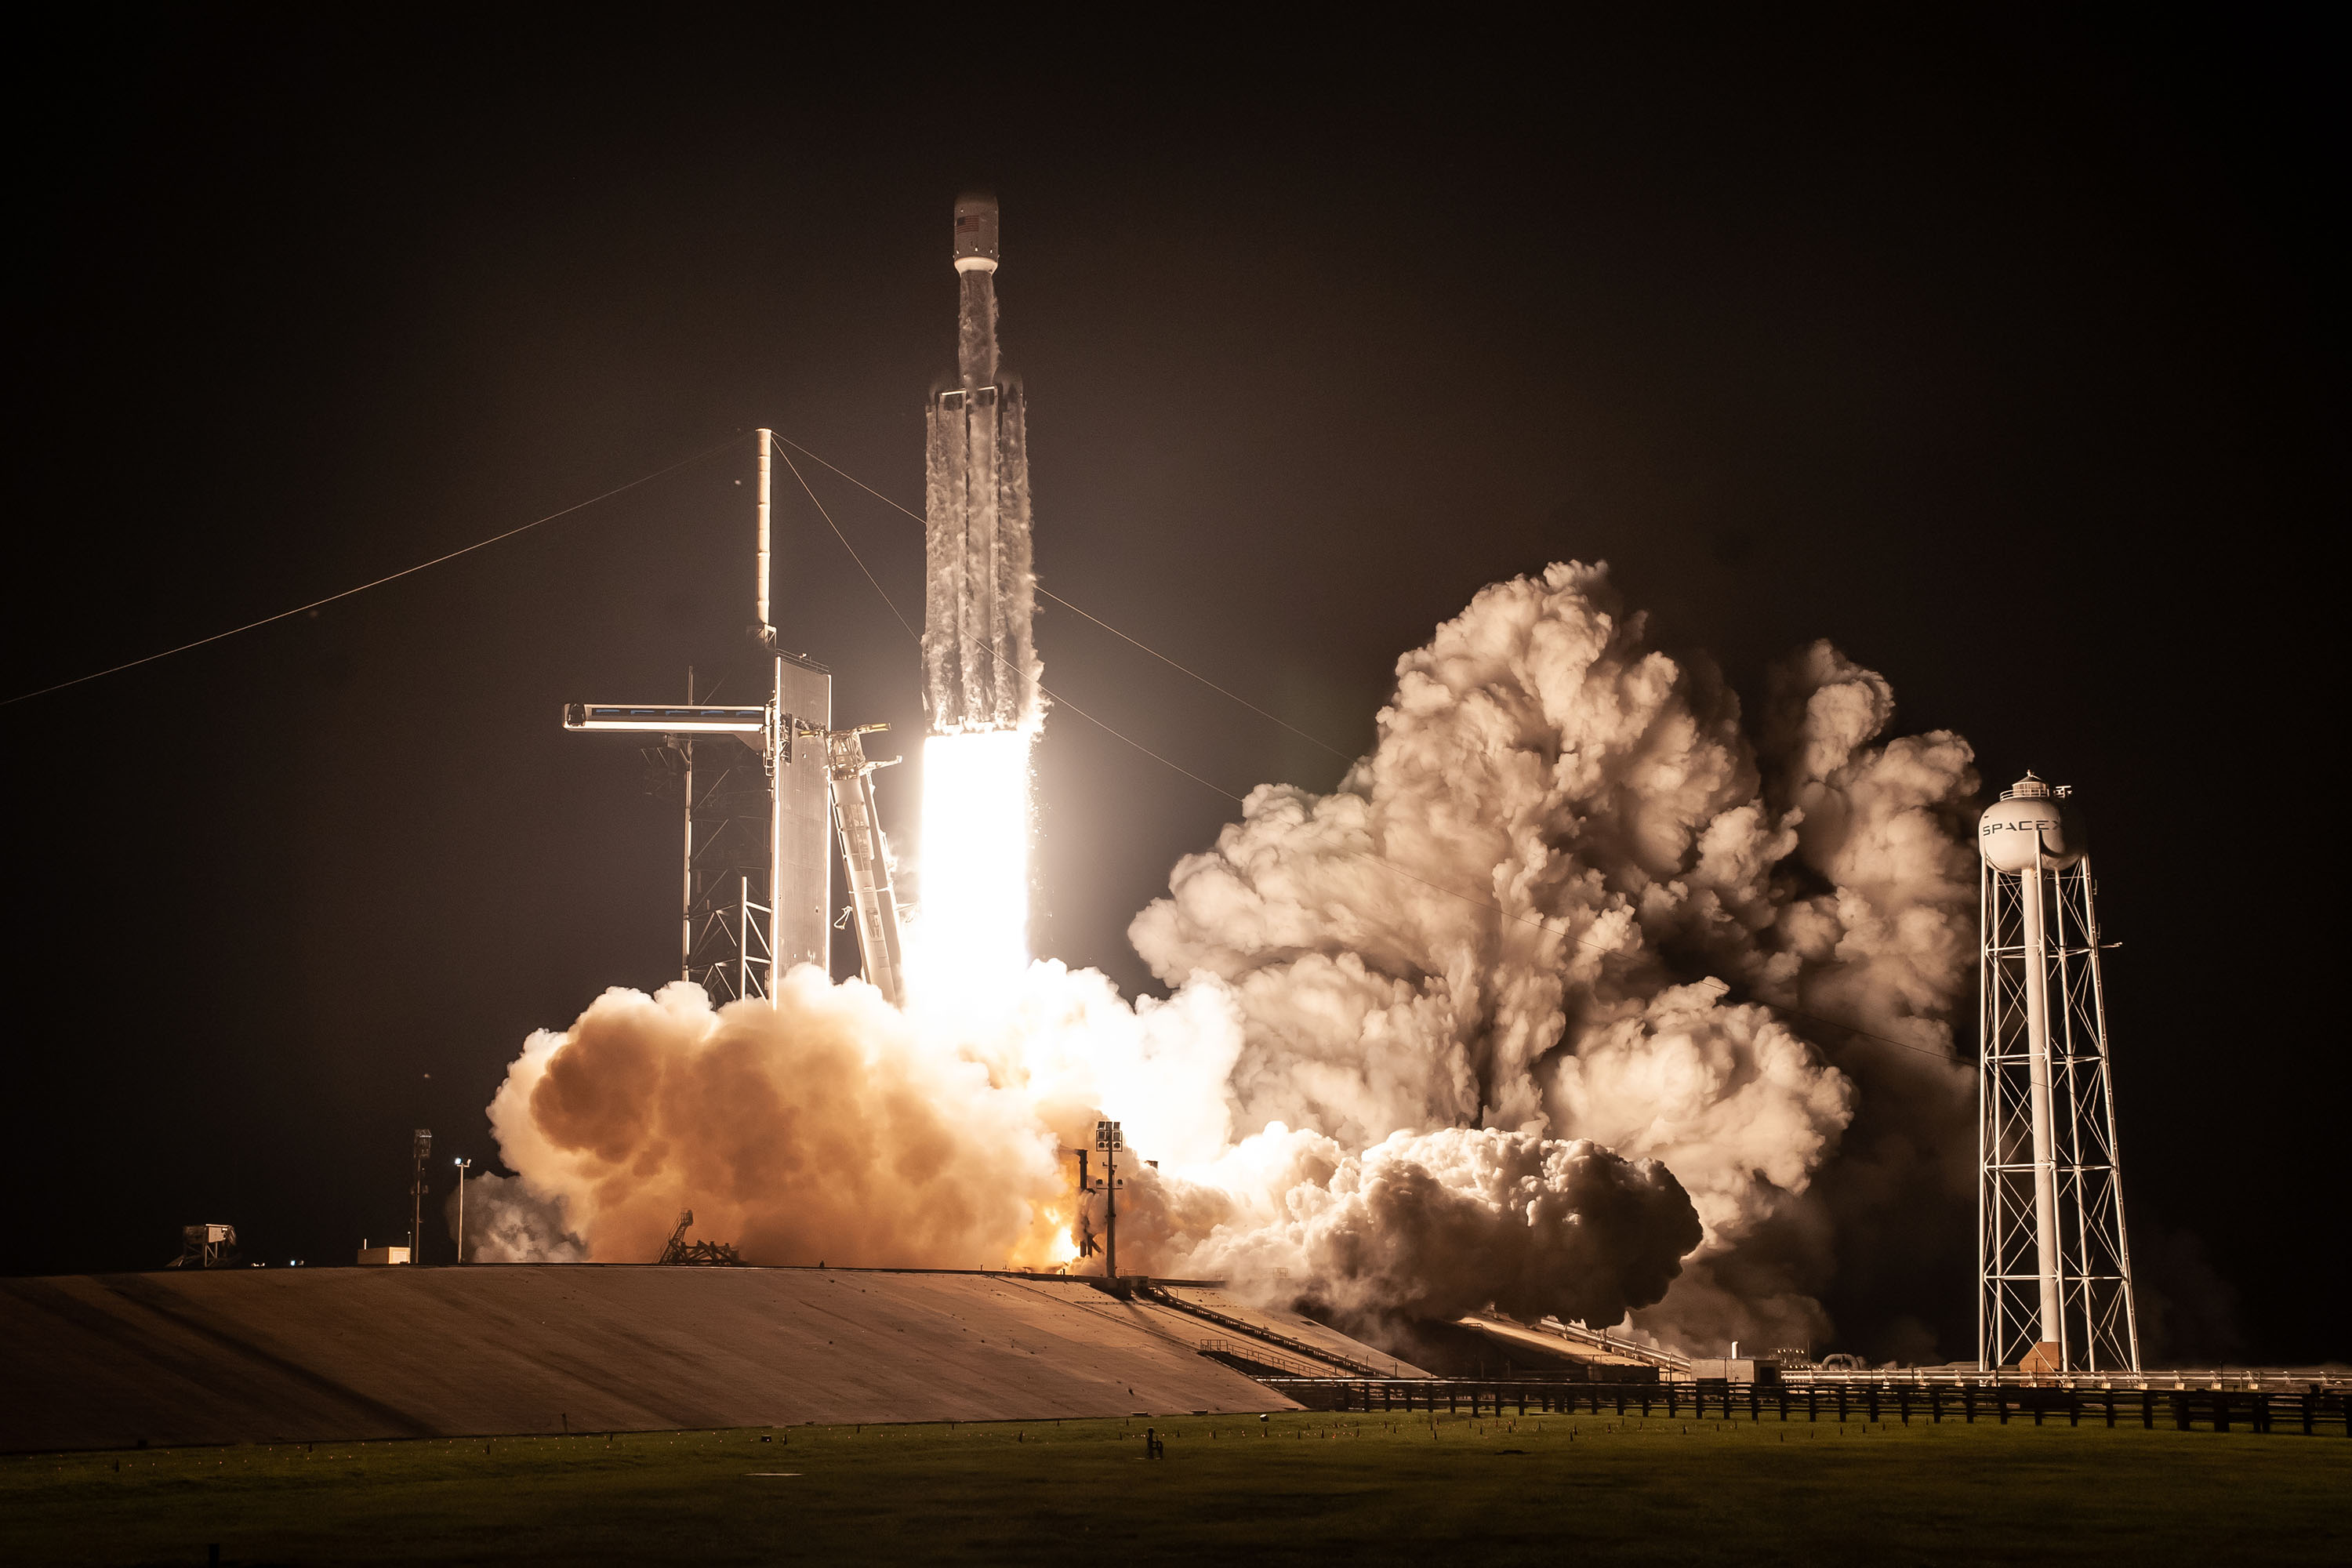 Falcon Heavy: Arabsat 6A Launch Date, SpaceX Preparations